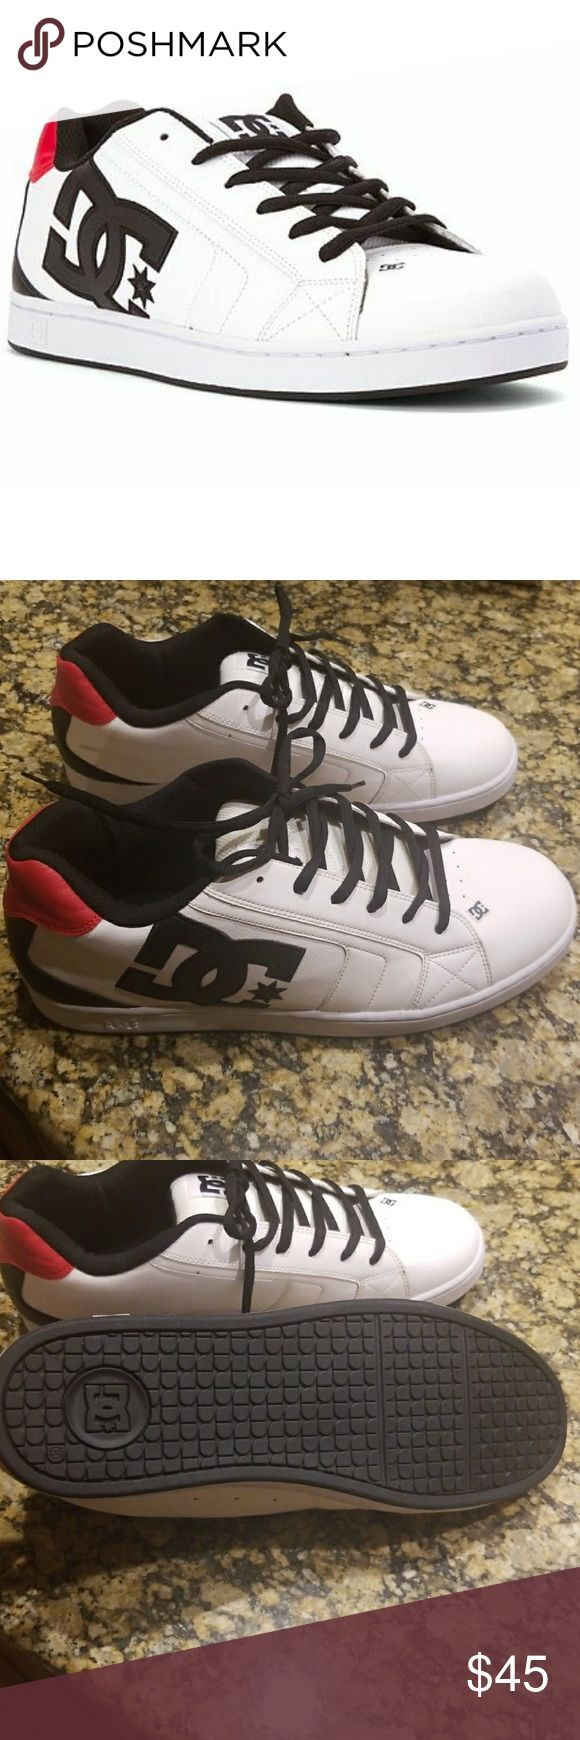 White, Black and Red DC Net Skate Shoes Brand New. DC Net Skate Shoes DC Shoes Athletic Shoes